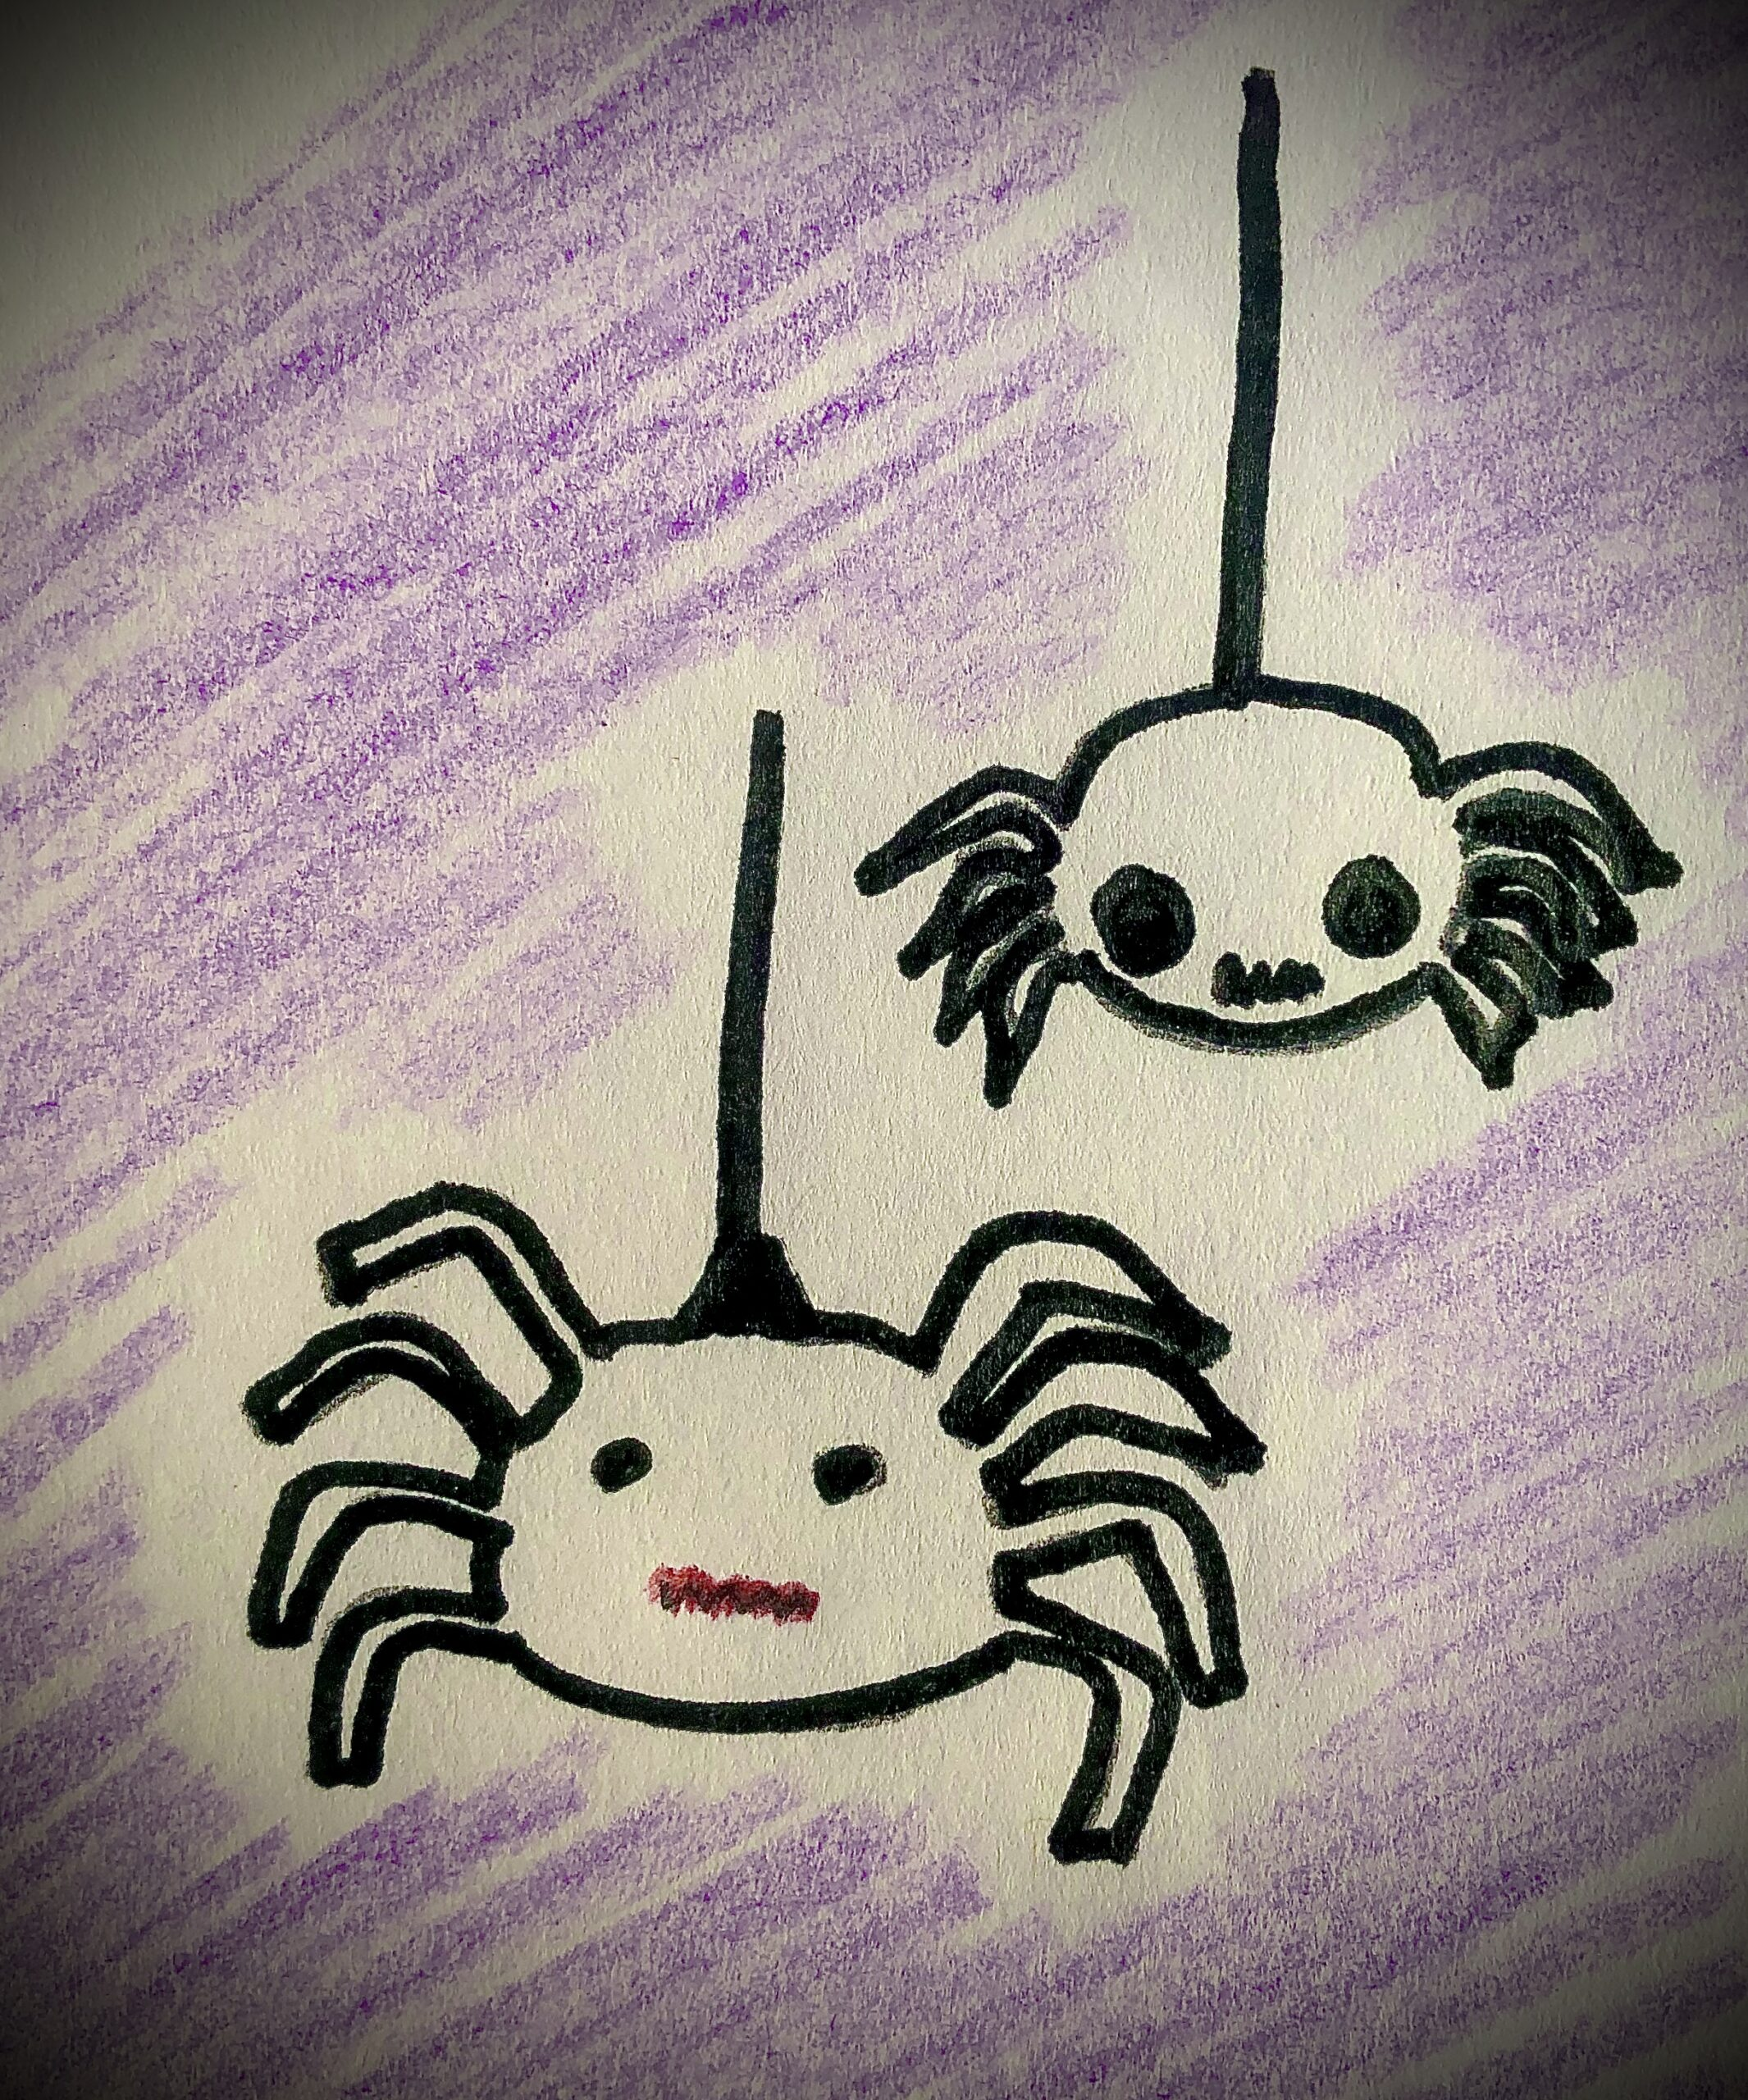 Drawing of 2 black spiders, with a purple background for the detective story.